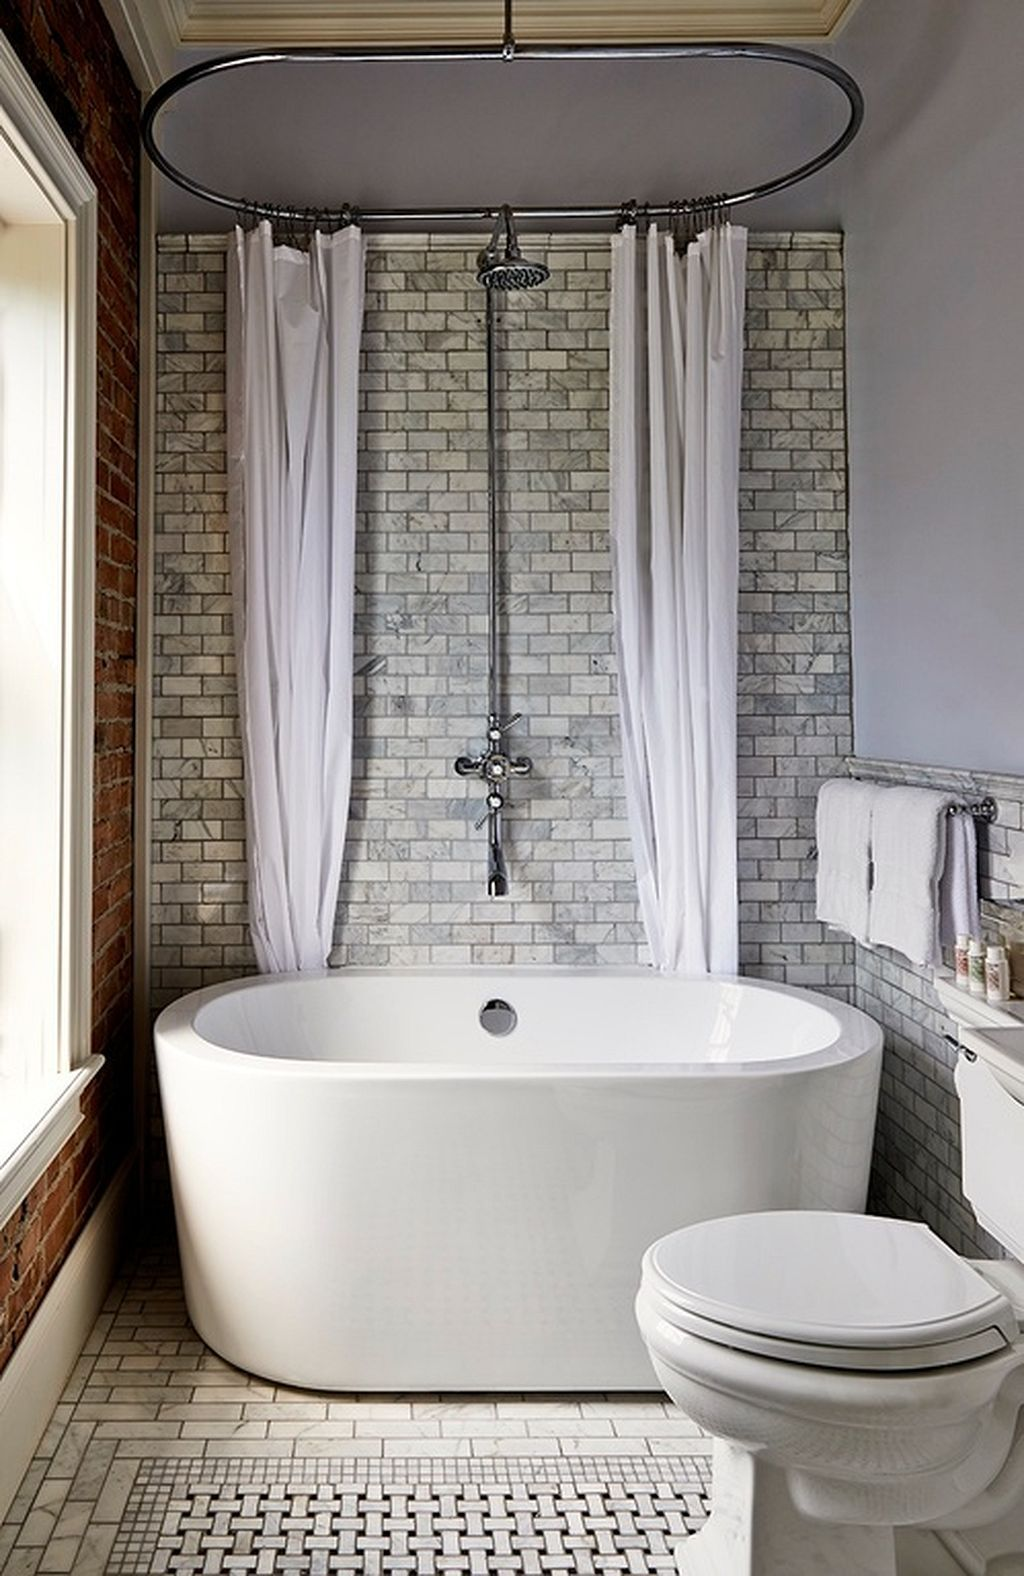 30 Incredible Ideas Small Bathroom With Tub 8 With Images